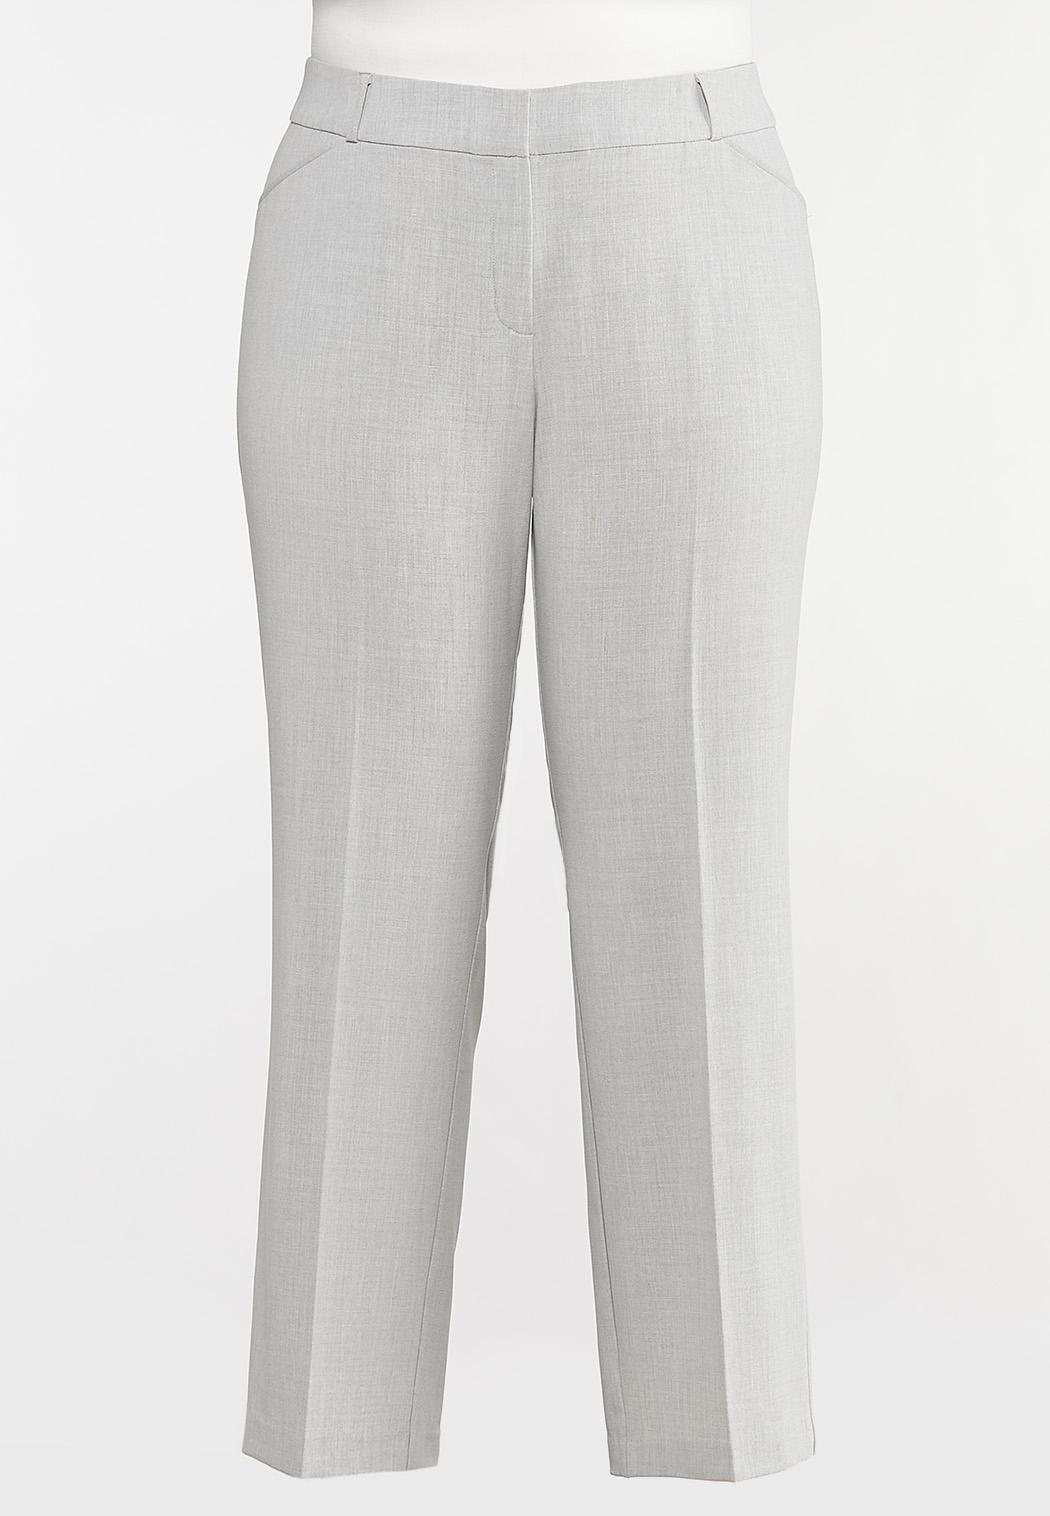 Plus Size Gray Trouser Pants